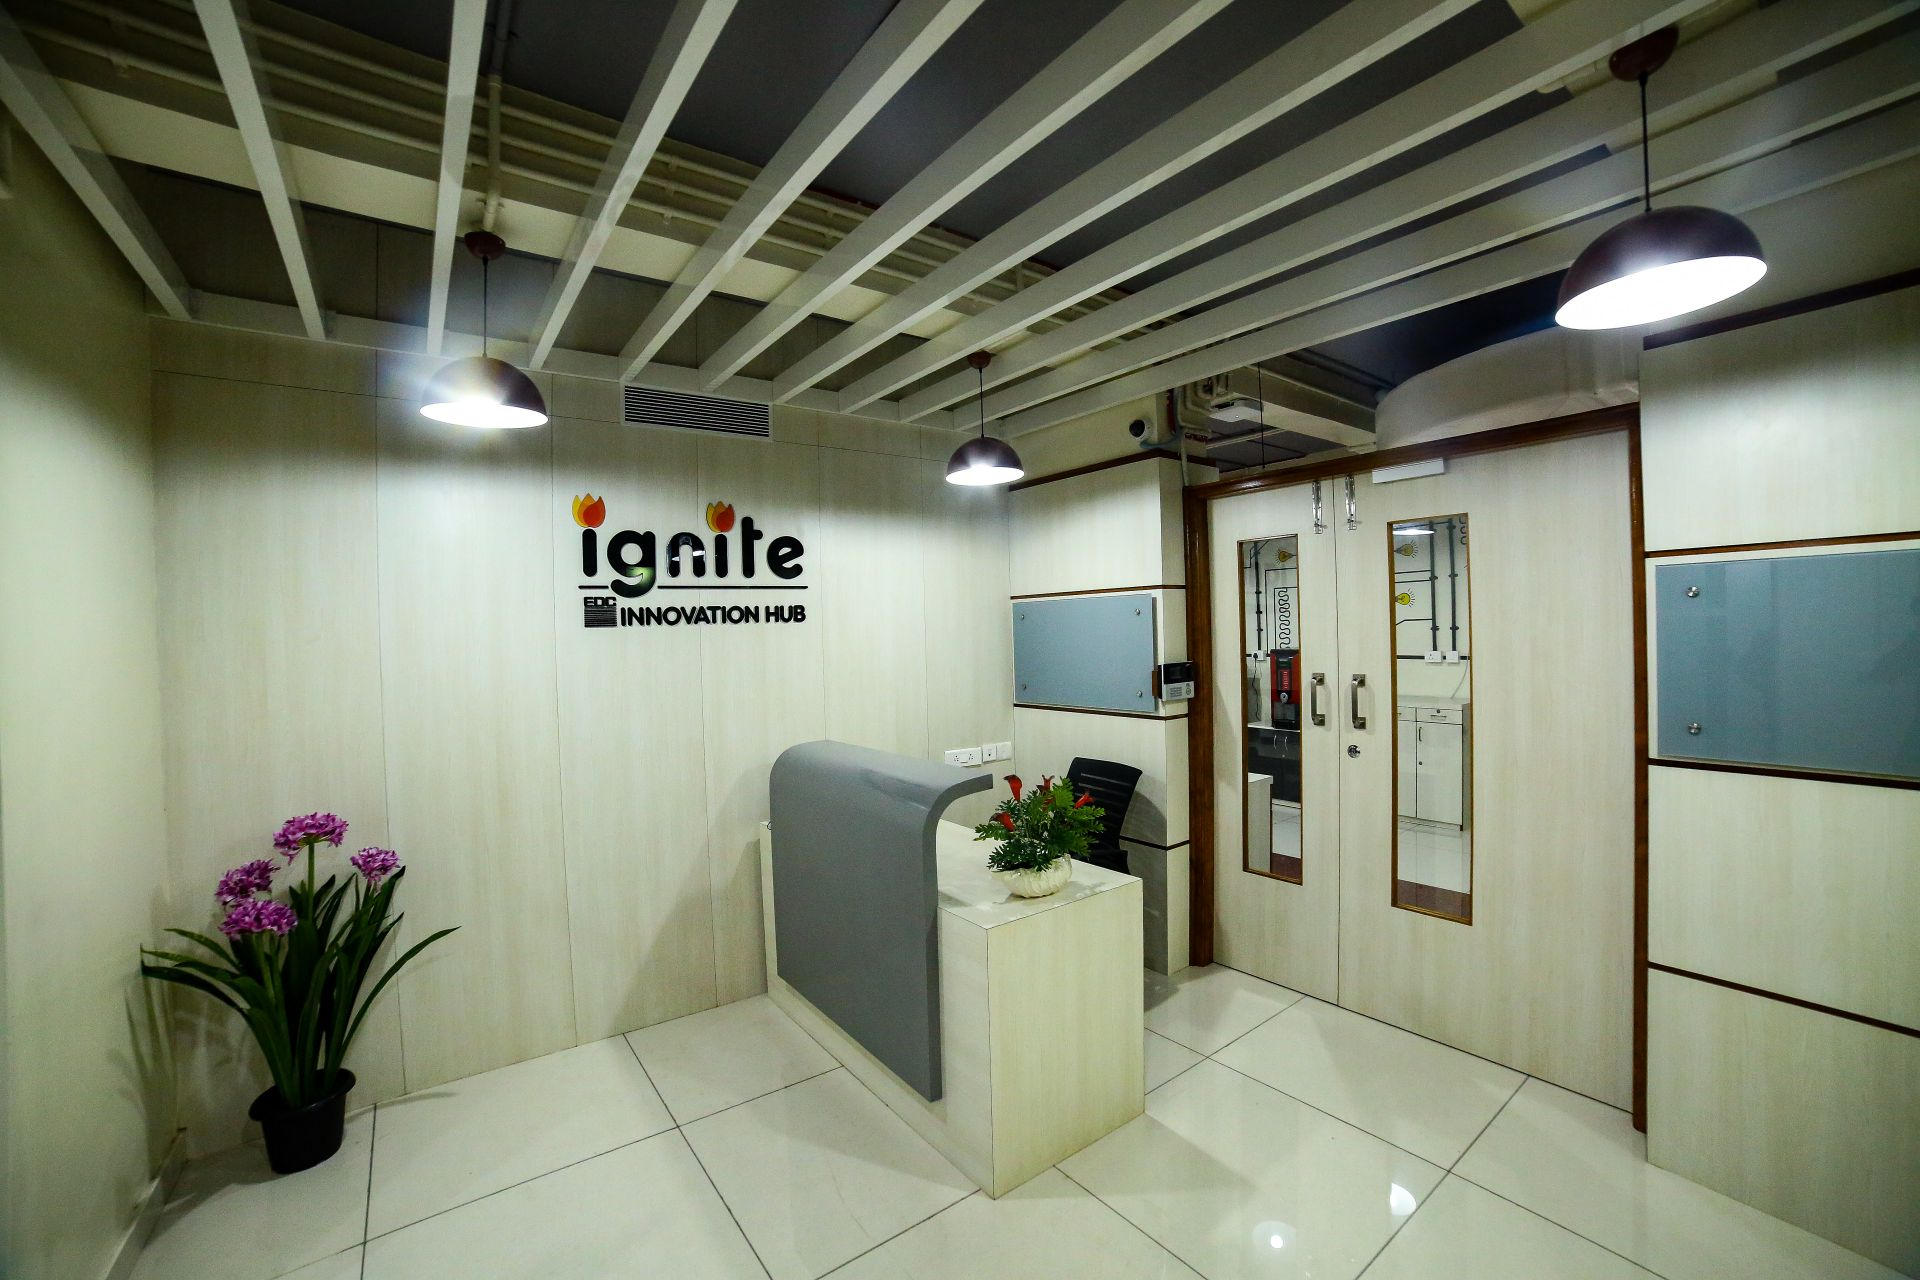 Ignite-EDC Innovation Hub, Panaji